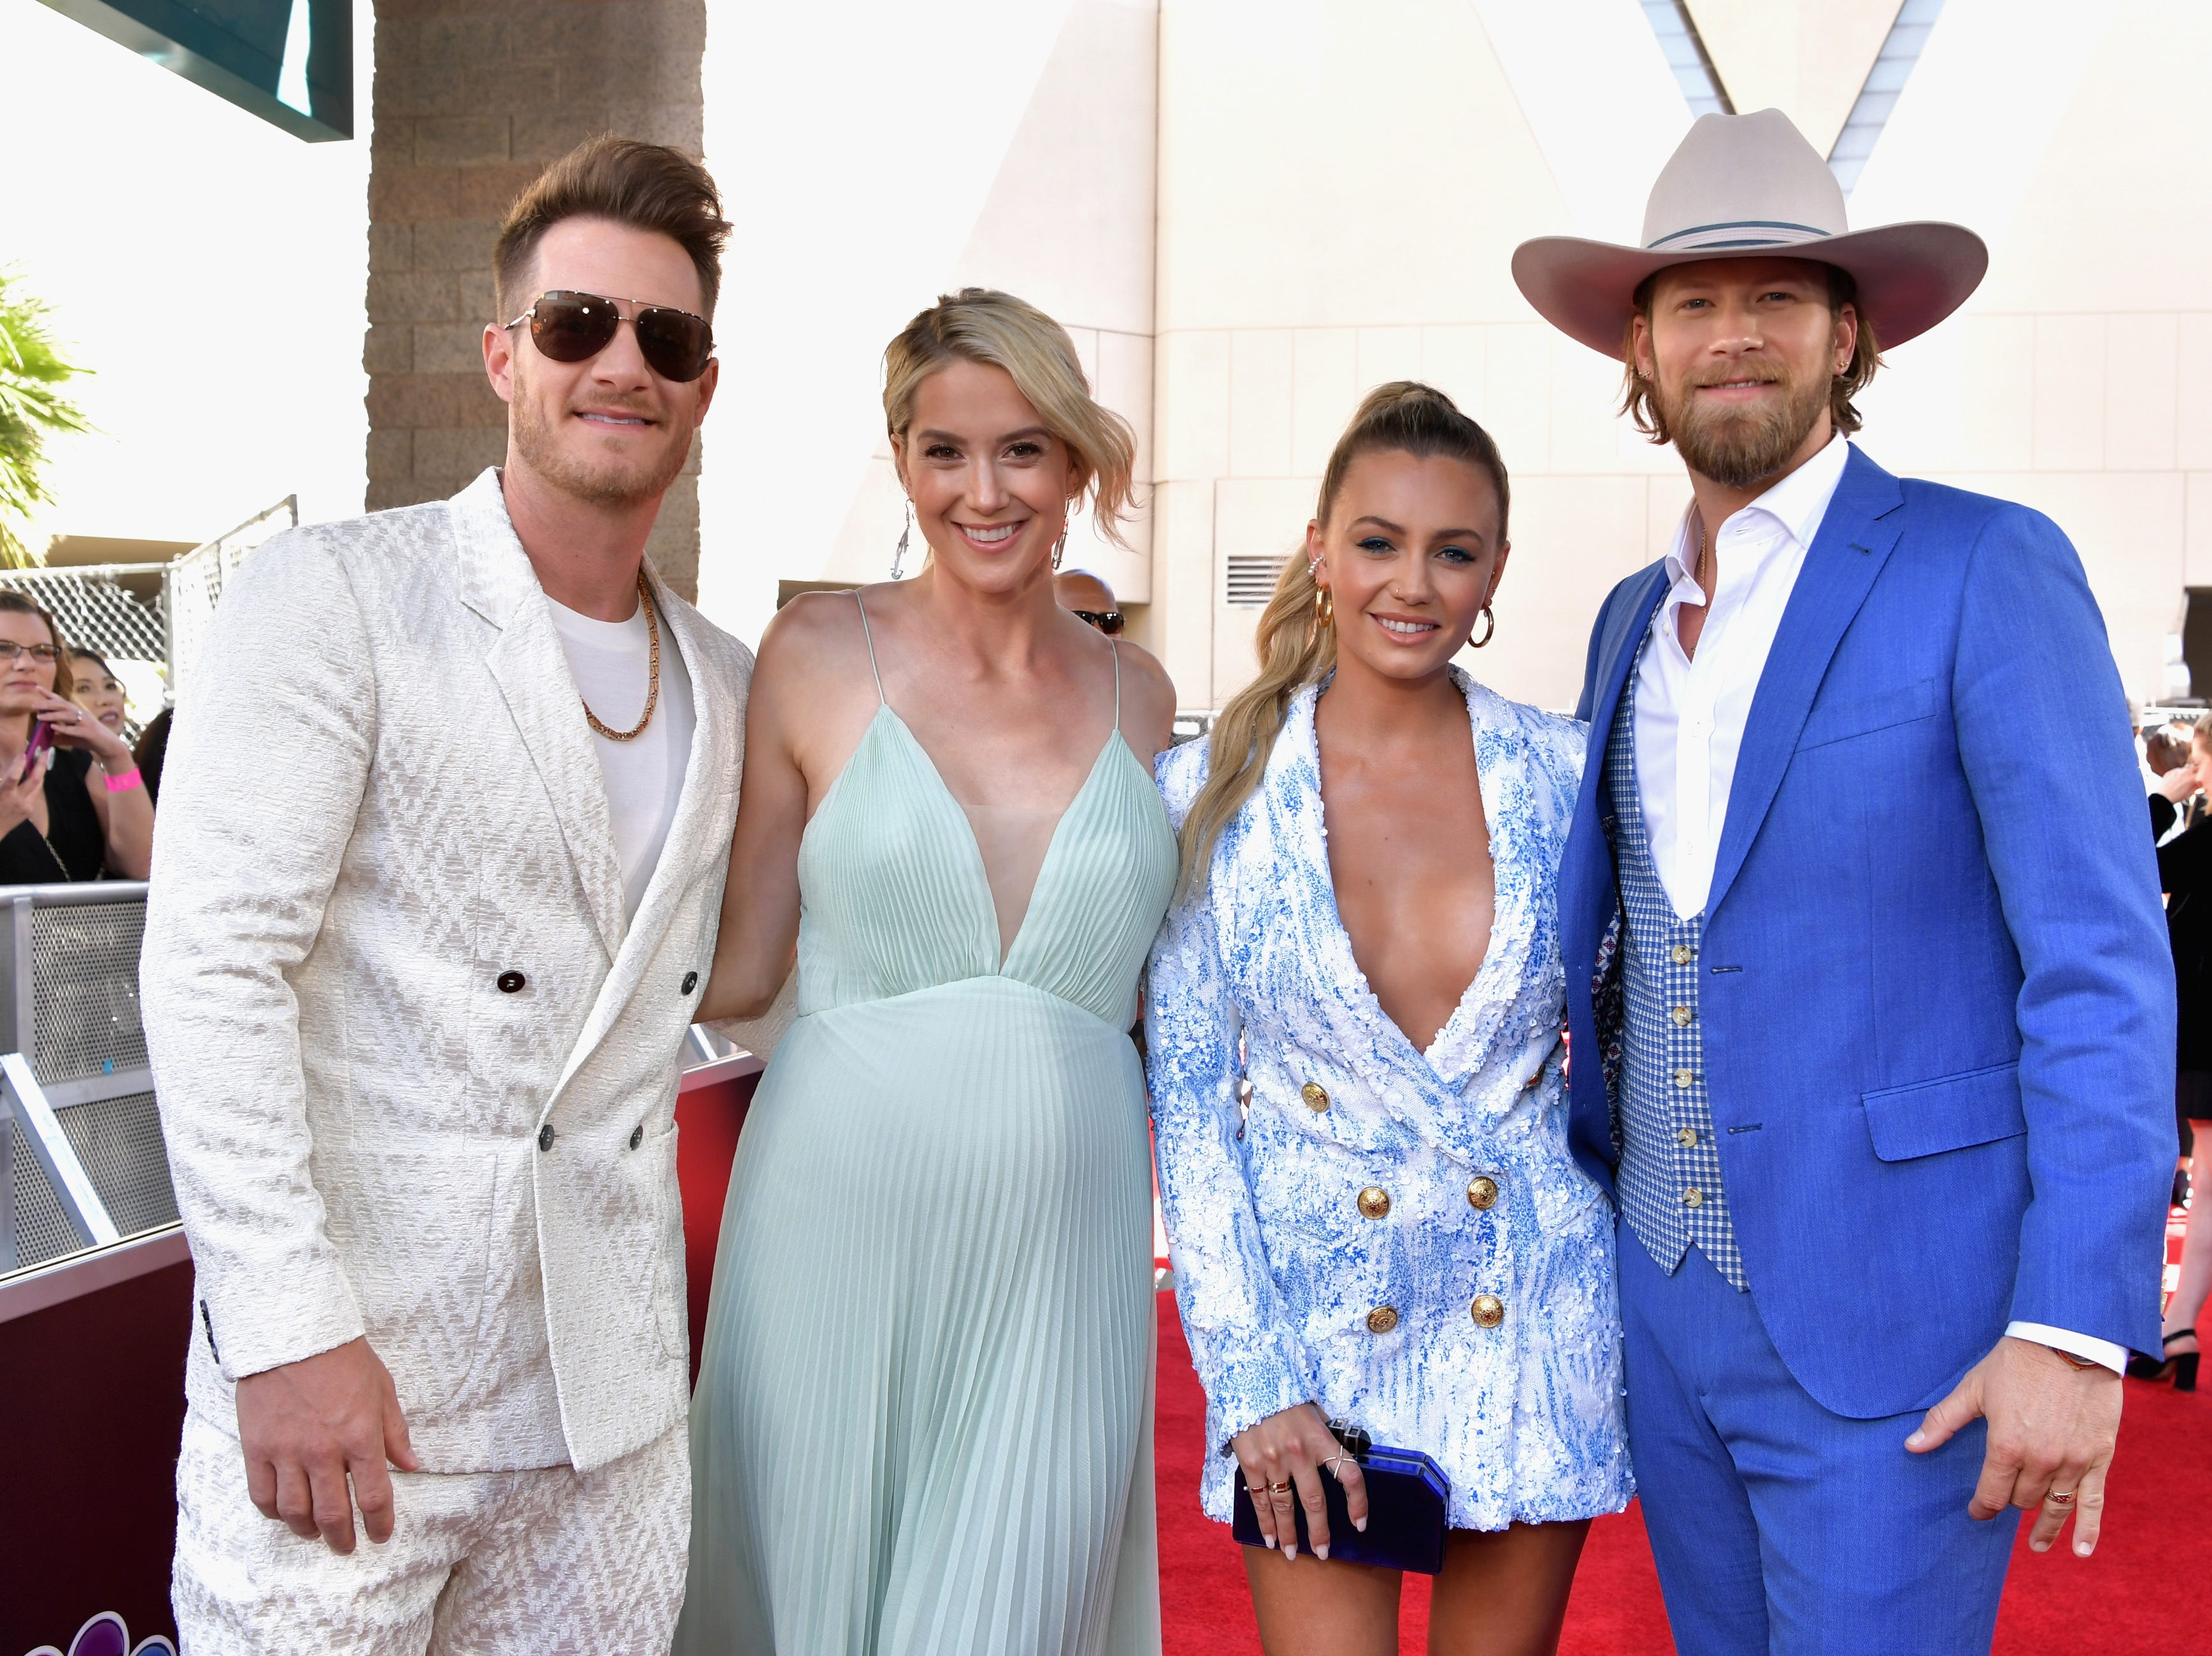 Brian Kelley of Florida Georgia Line, Brittney Marie Cole, Hayley Stommel, and Tyler Hubbard of Florida Georgia Line attend the 2019 Billboard Music Awards at MGM Grand Garden Arena on May 1, 2019 in Las Vegas, Nevada.